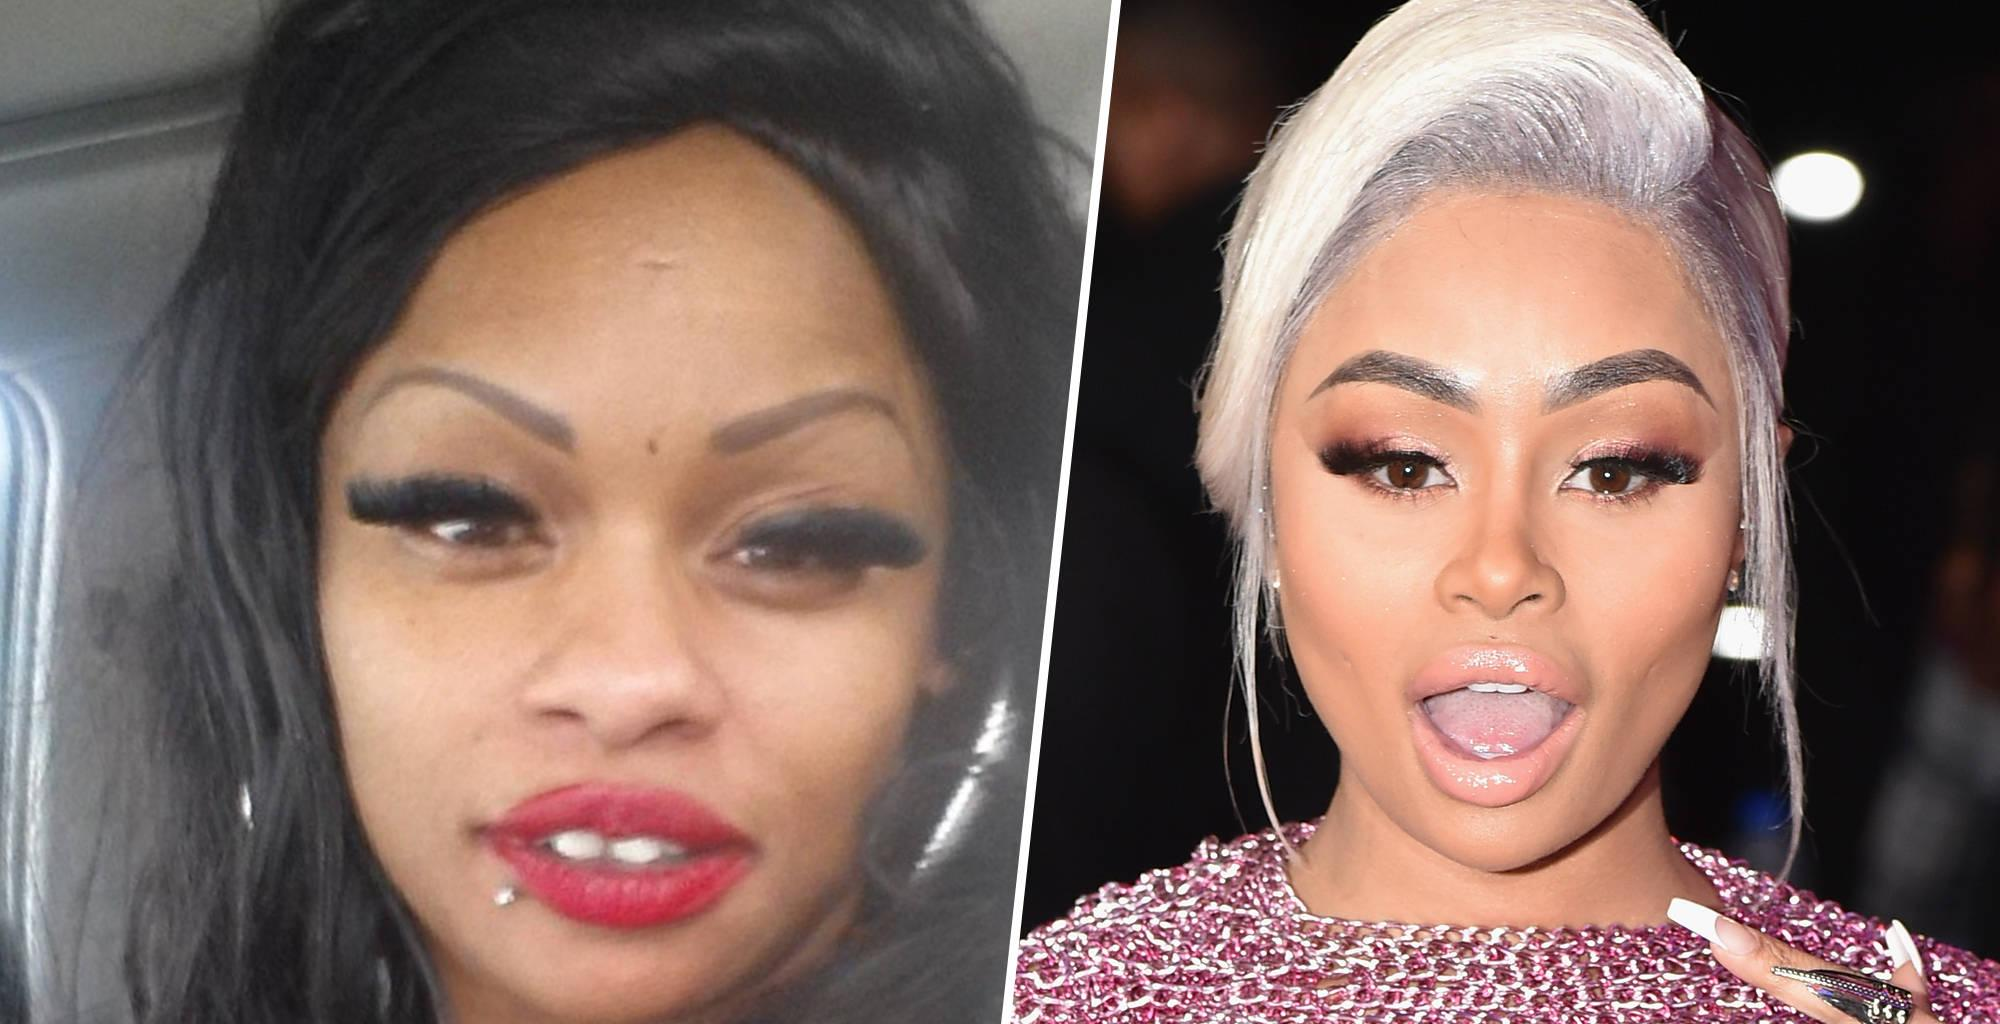 Tokyo Toni Has The Most Unexpected Reaction To Blac Chyna's Offer To Be Featured In Her Docu-Series - Watch The Video